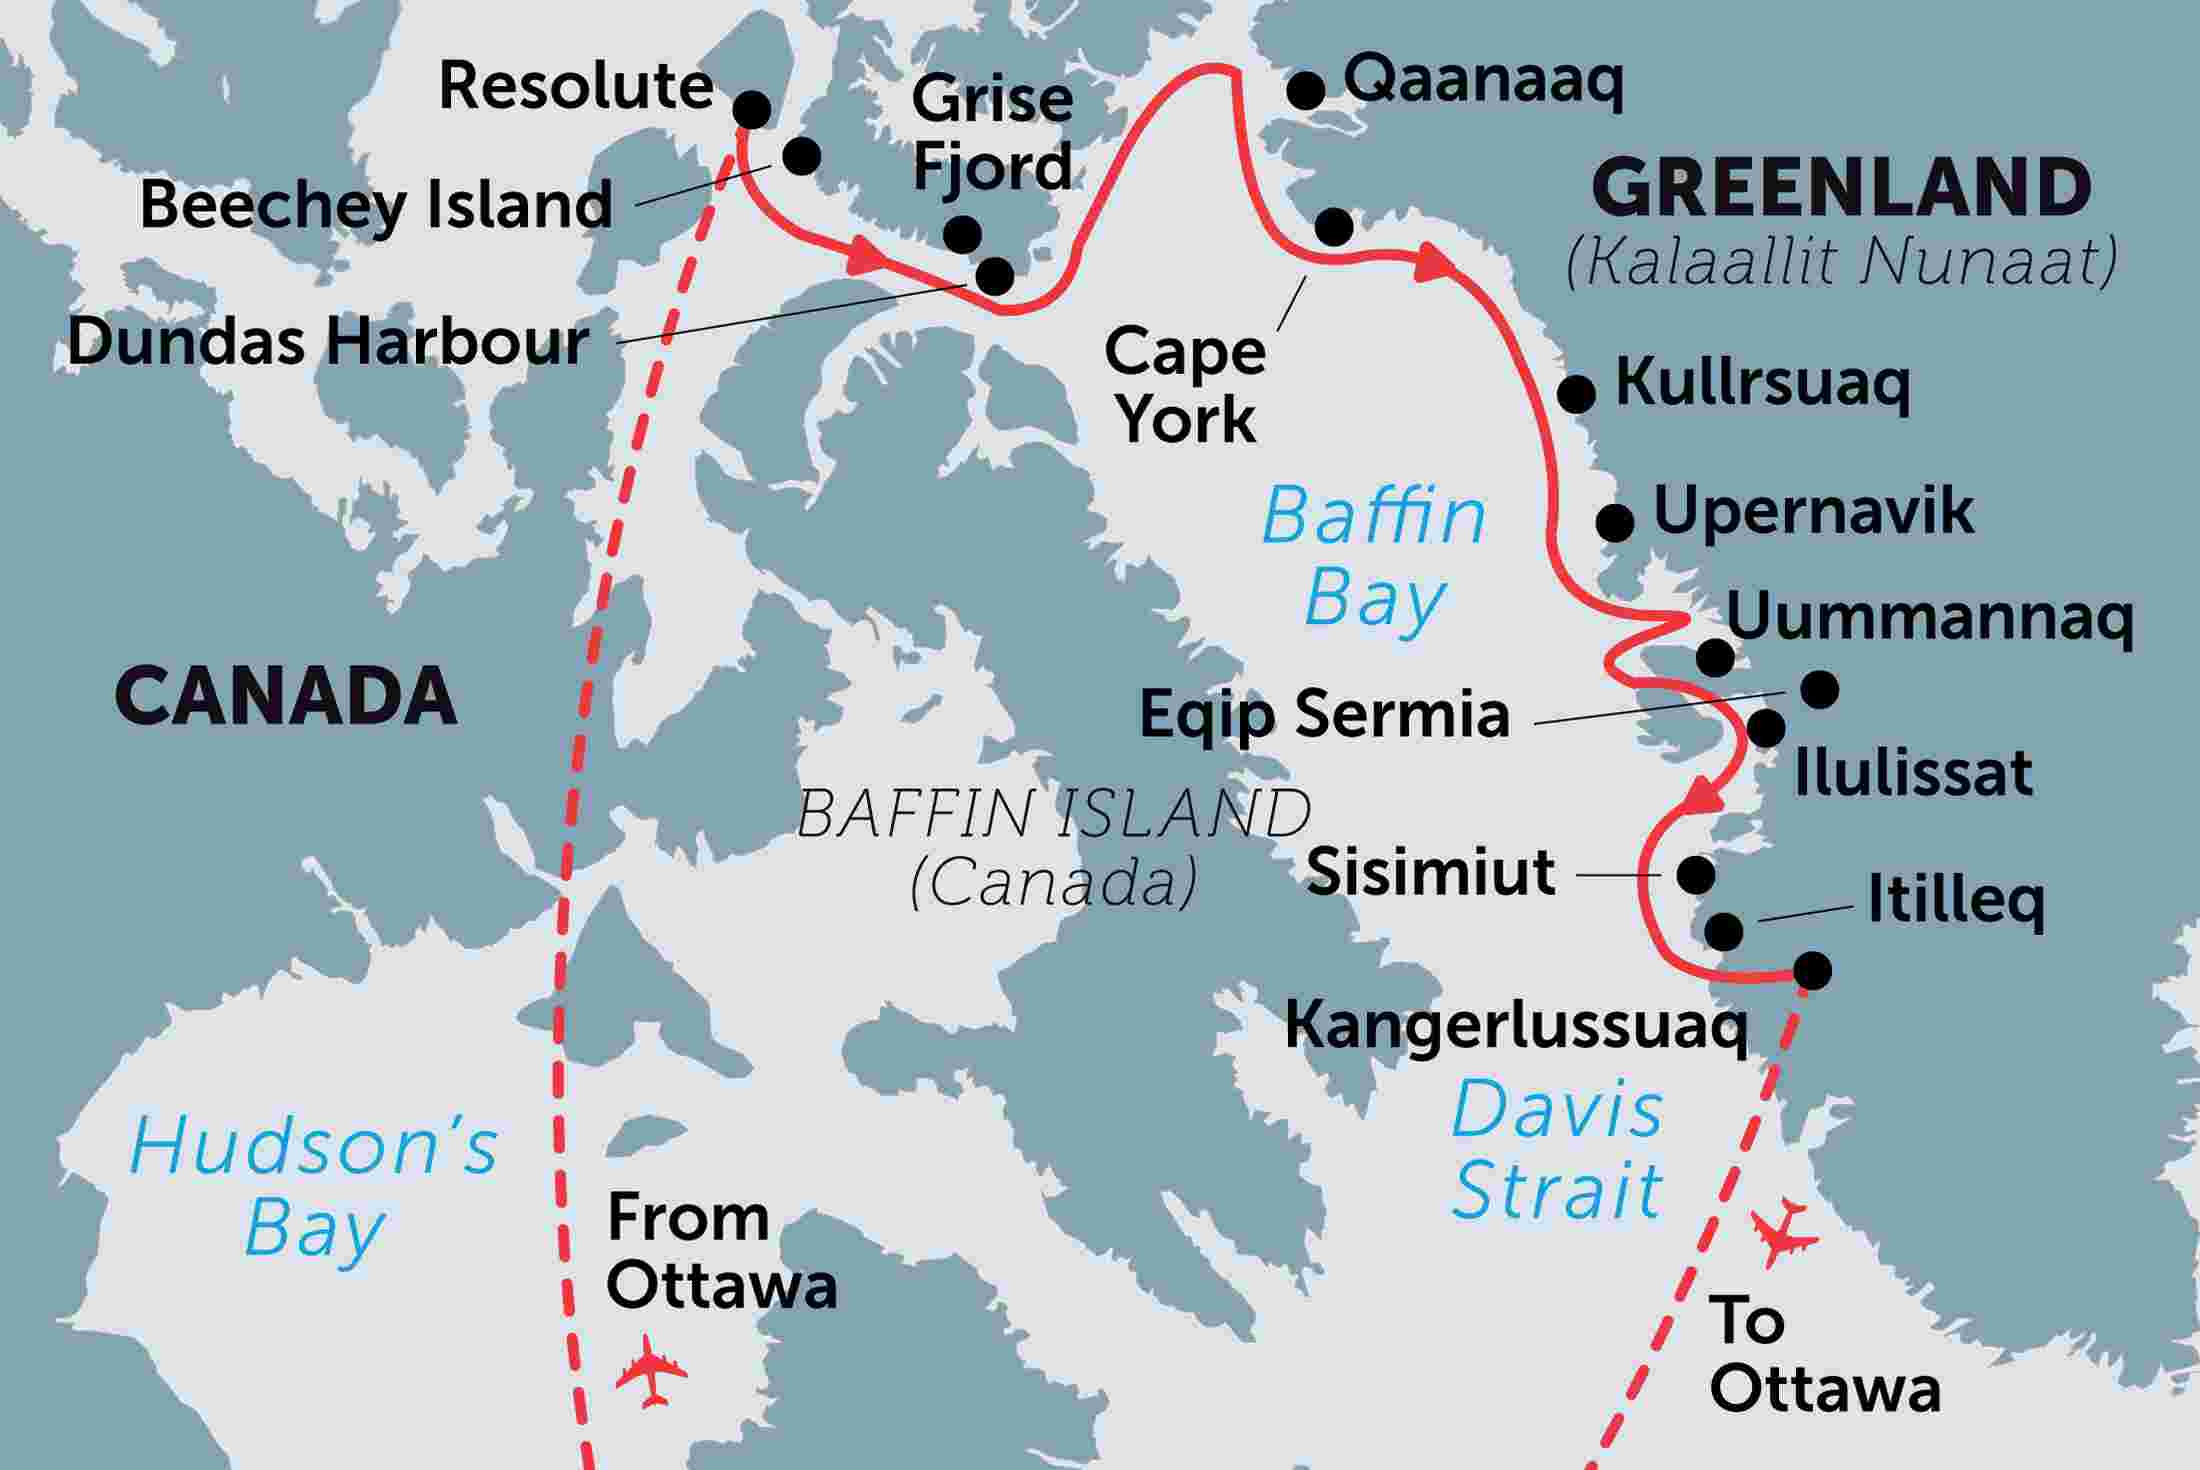 Islands Of Canada Map.Northwest Passage High Arctic Villages And Icebergs Overview Northwest Passage High Arctic Villages And Icebergs